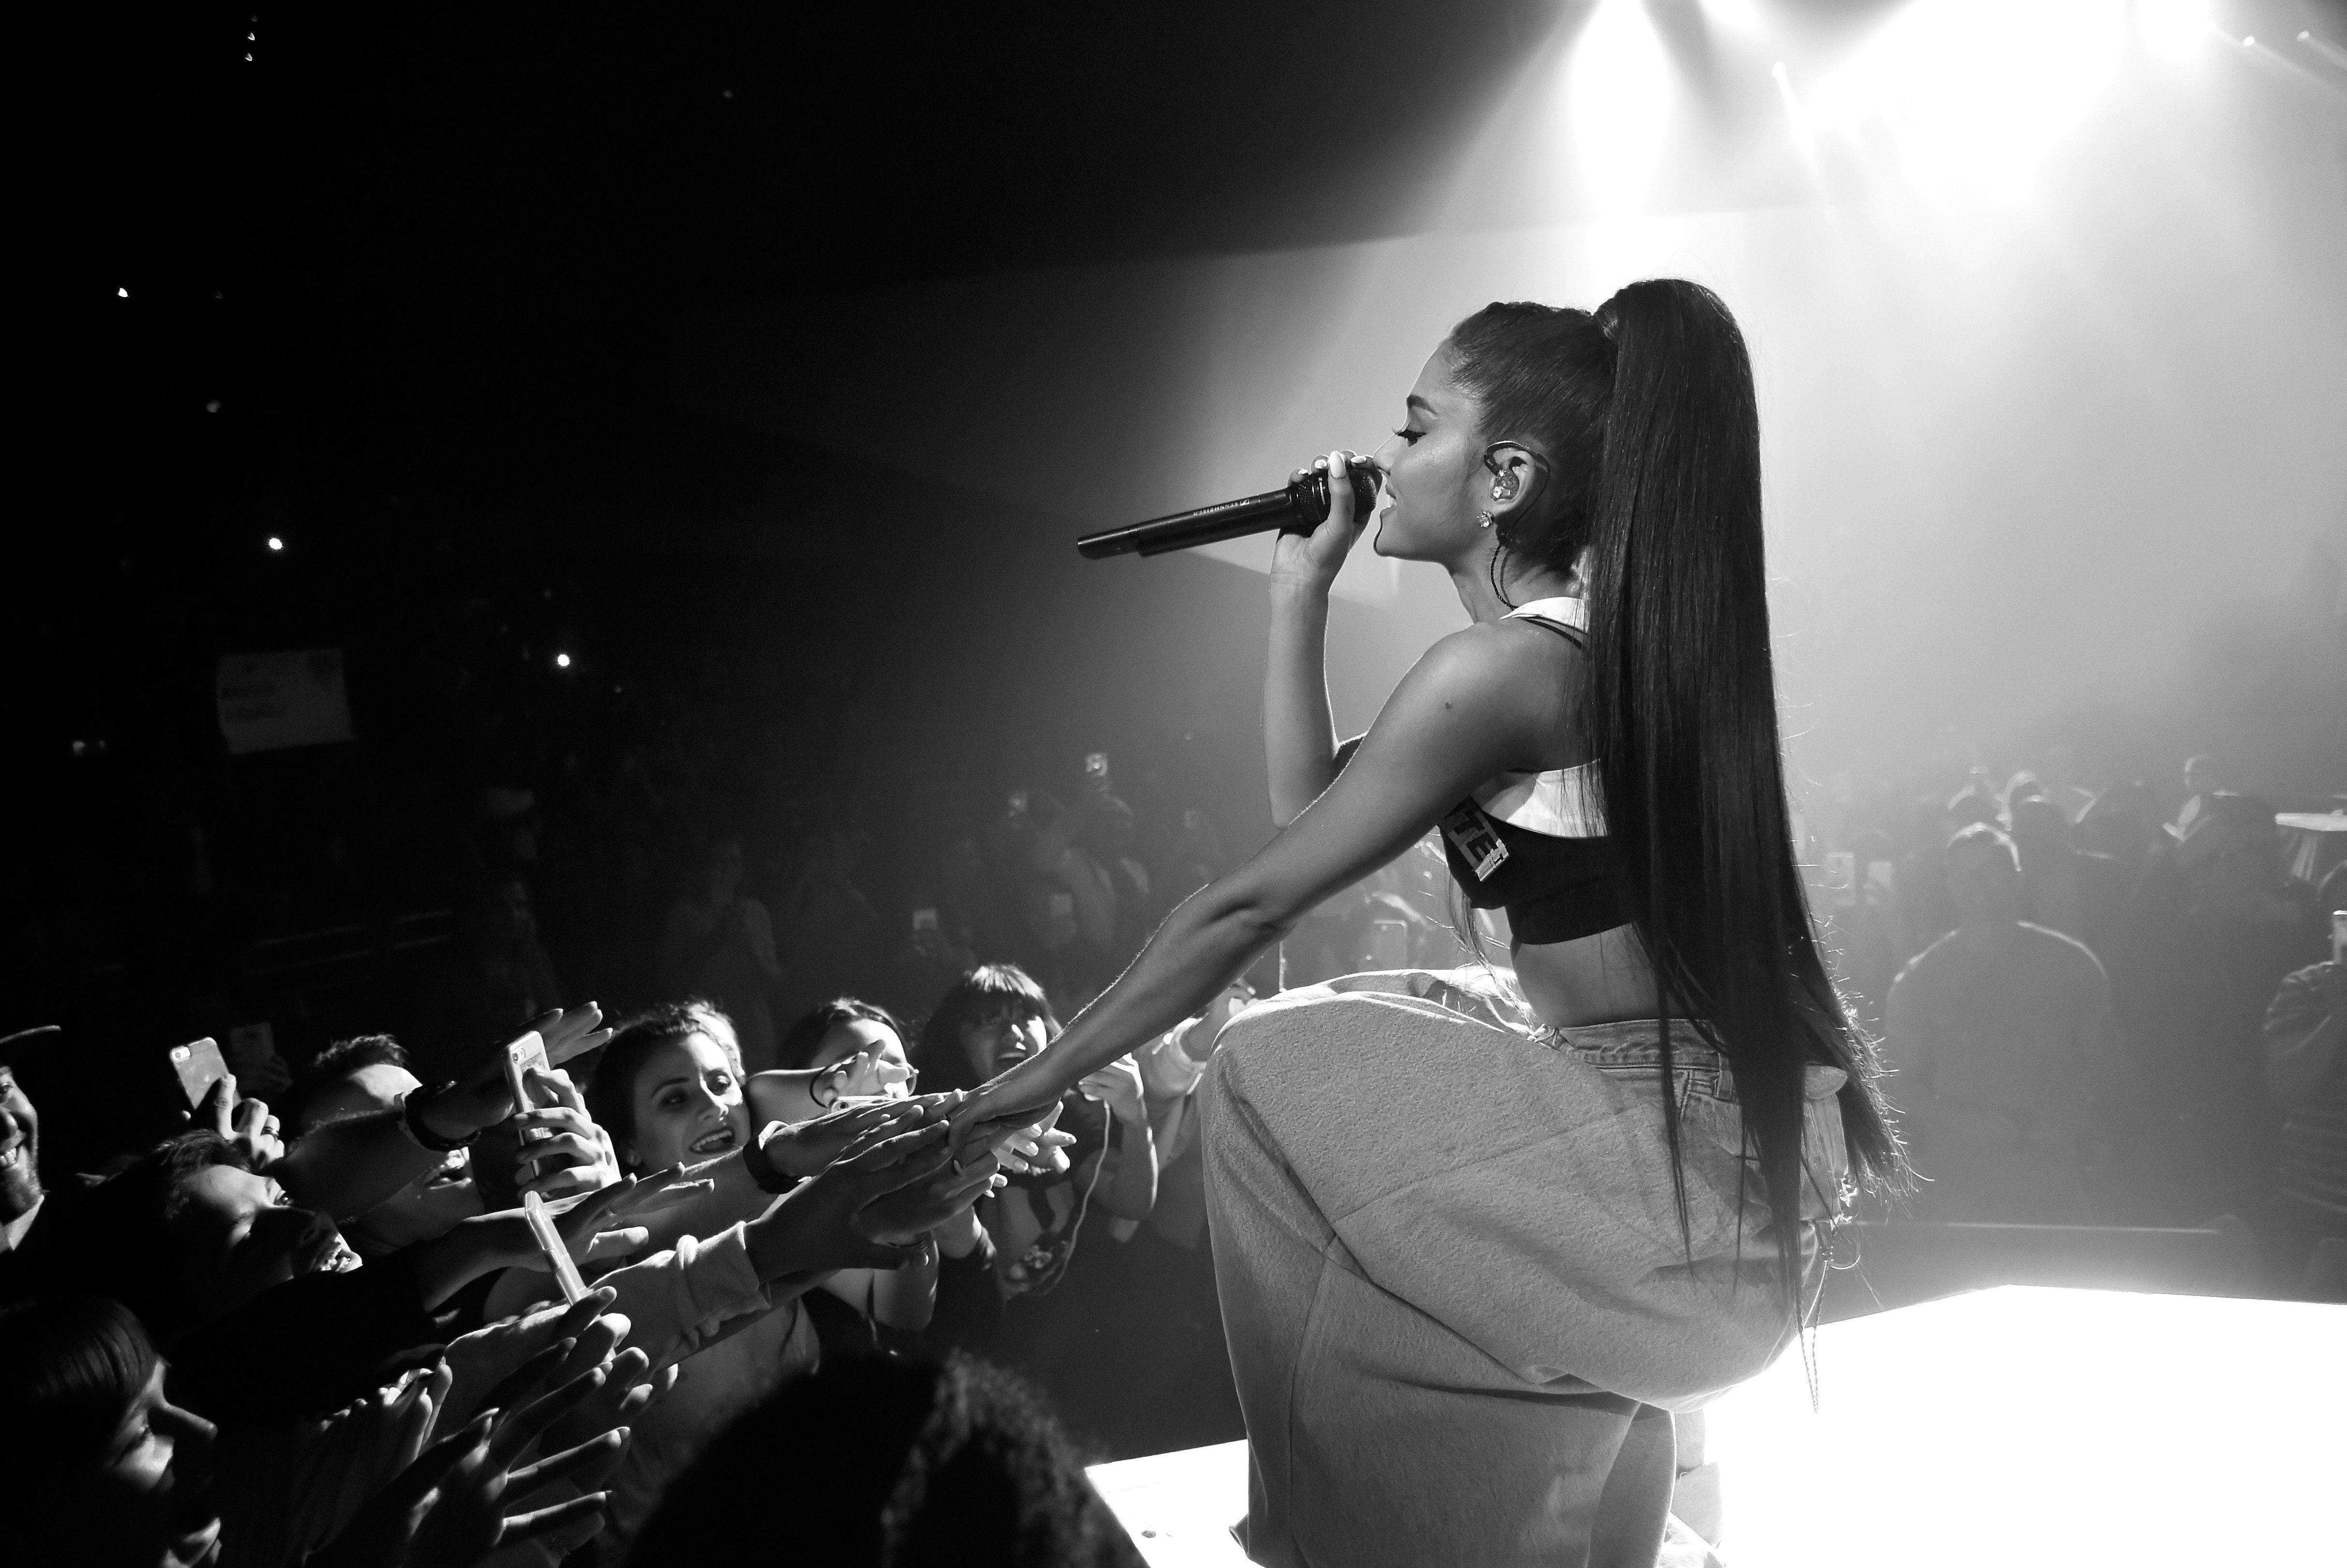 PHOENIX, AZ - FEBRUARY 03:  (EXCLUSIVE COVERAGE) (EDITORS NOTE: This image has been converted to black and white.)  Ariana Grande performs on stage during the 'Dangerous Woman' Tour Opener at Talking Stick Resort Arena on February 3, 2017 in Phoenix, Arizona.  (Photo by Kevin Mazur/Getty Images for Live Nation)